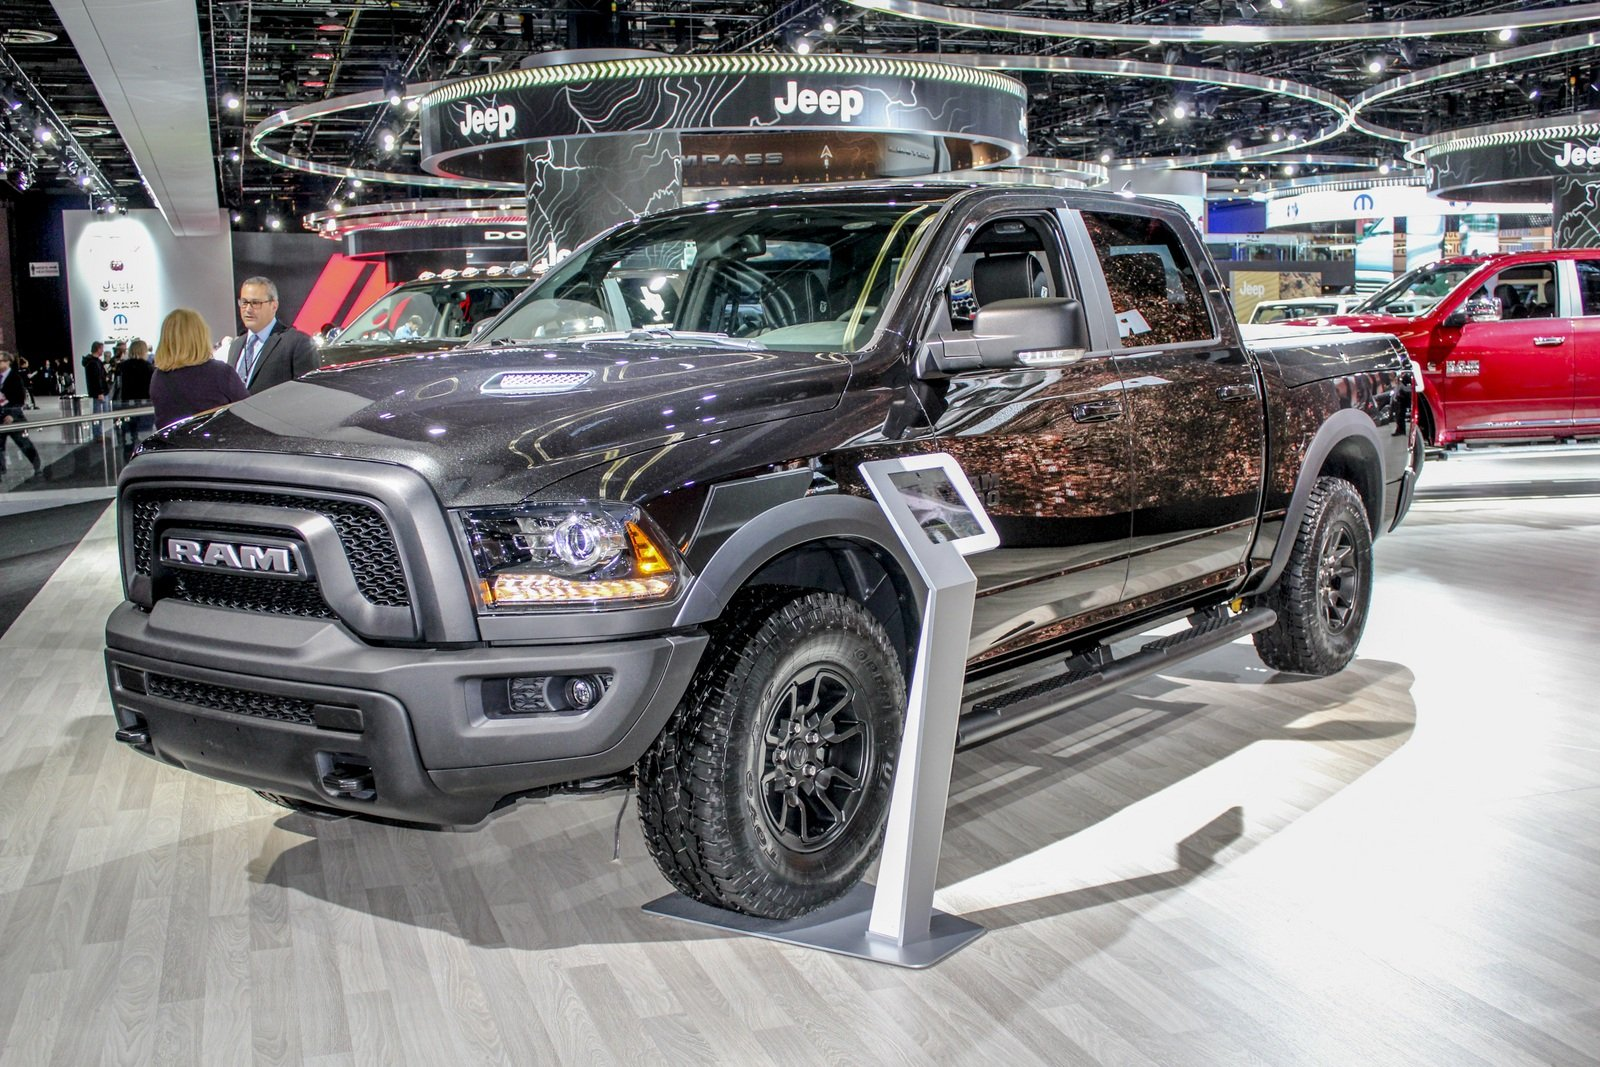 2017 ram 1500 rebel black edition picture 703112 truck review top speed. Black Bedroom Furniture Sets. Home Design Ideas